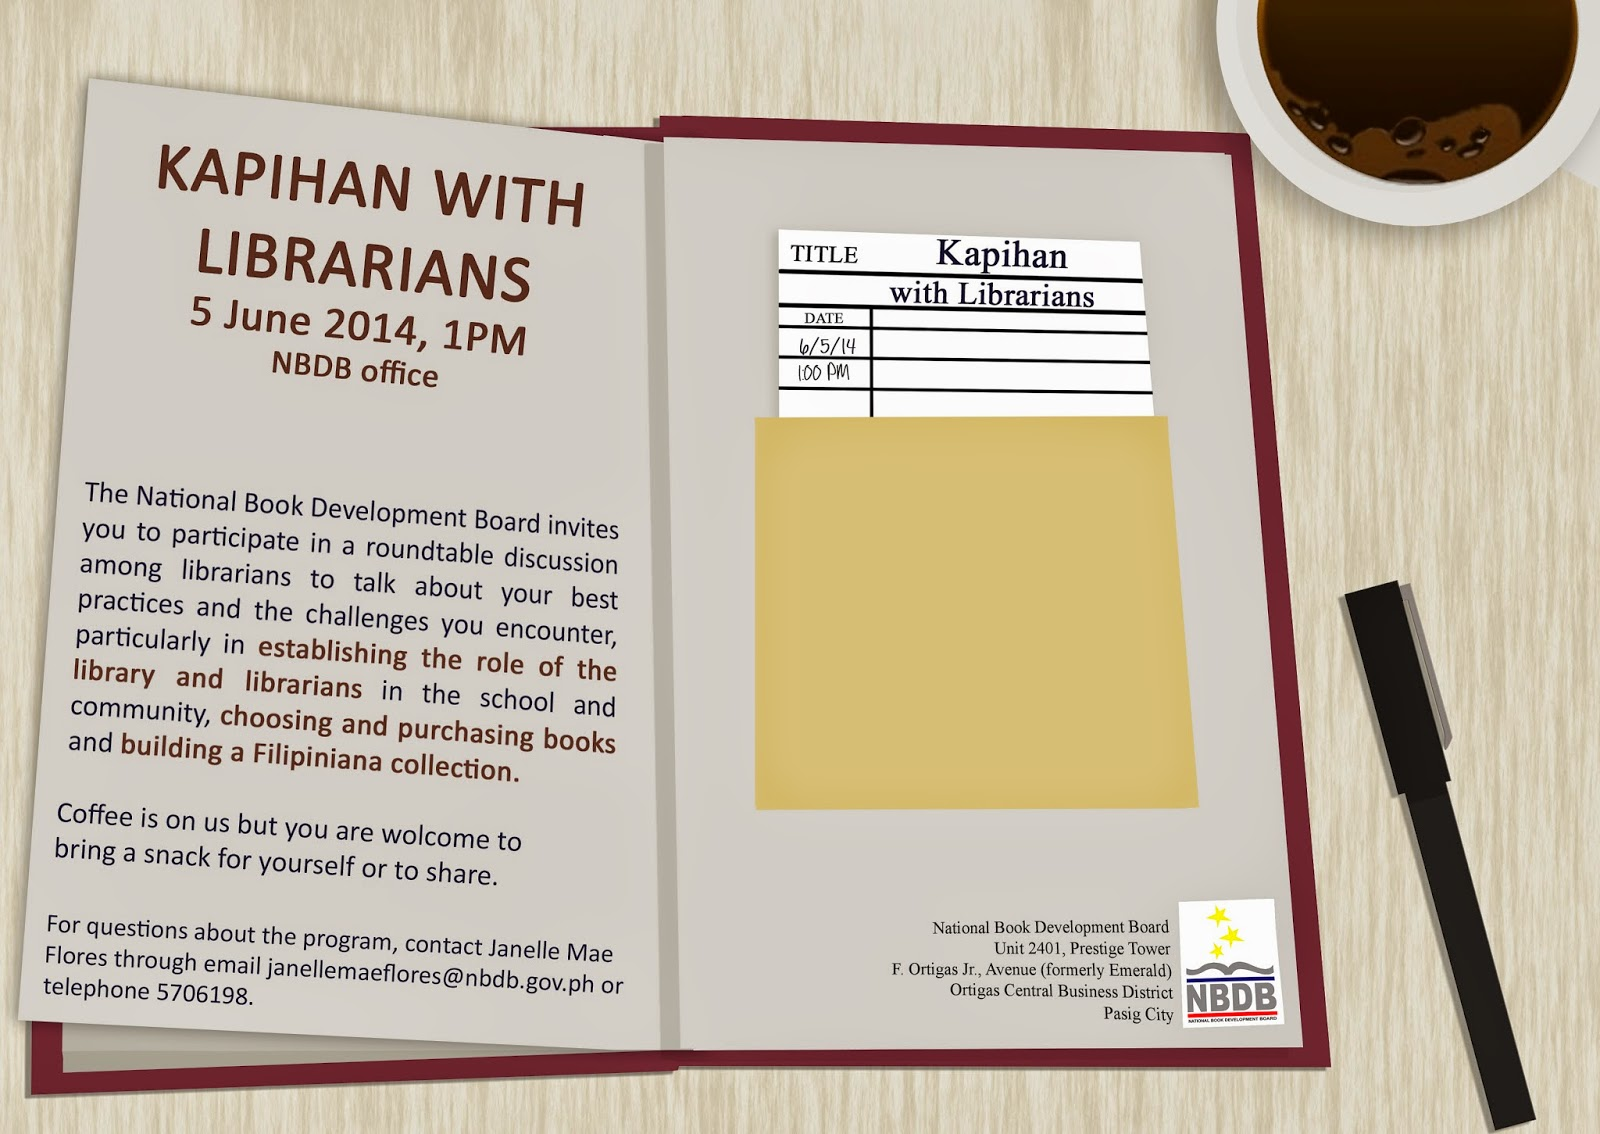 School librarian in action nbdbs kapihan with librarians i am looking forward to this round table discussion with stakeholders of the book industry meanwhile i am sifting through my list of what to share and stopboris Choice Image